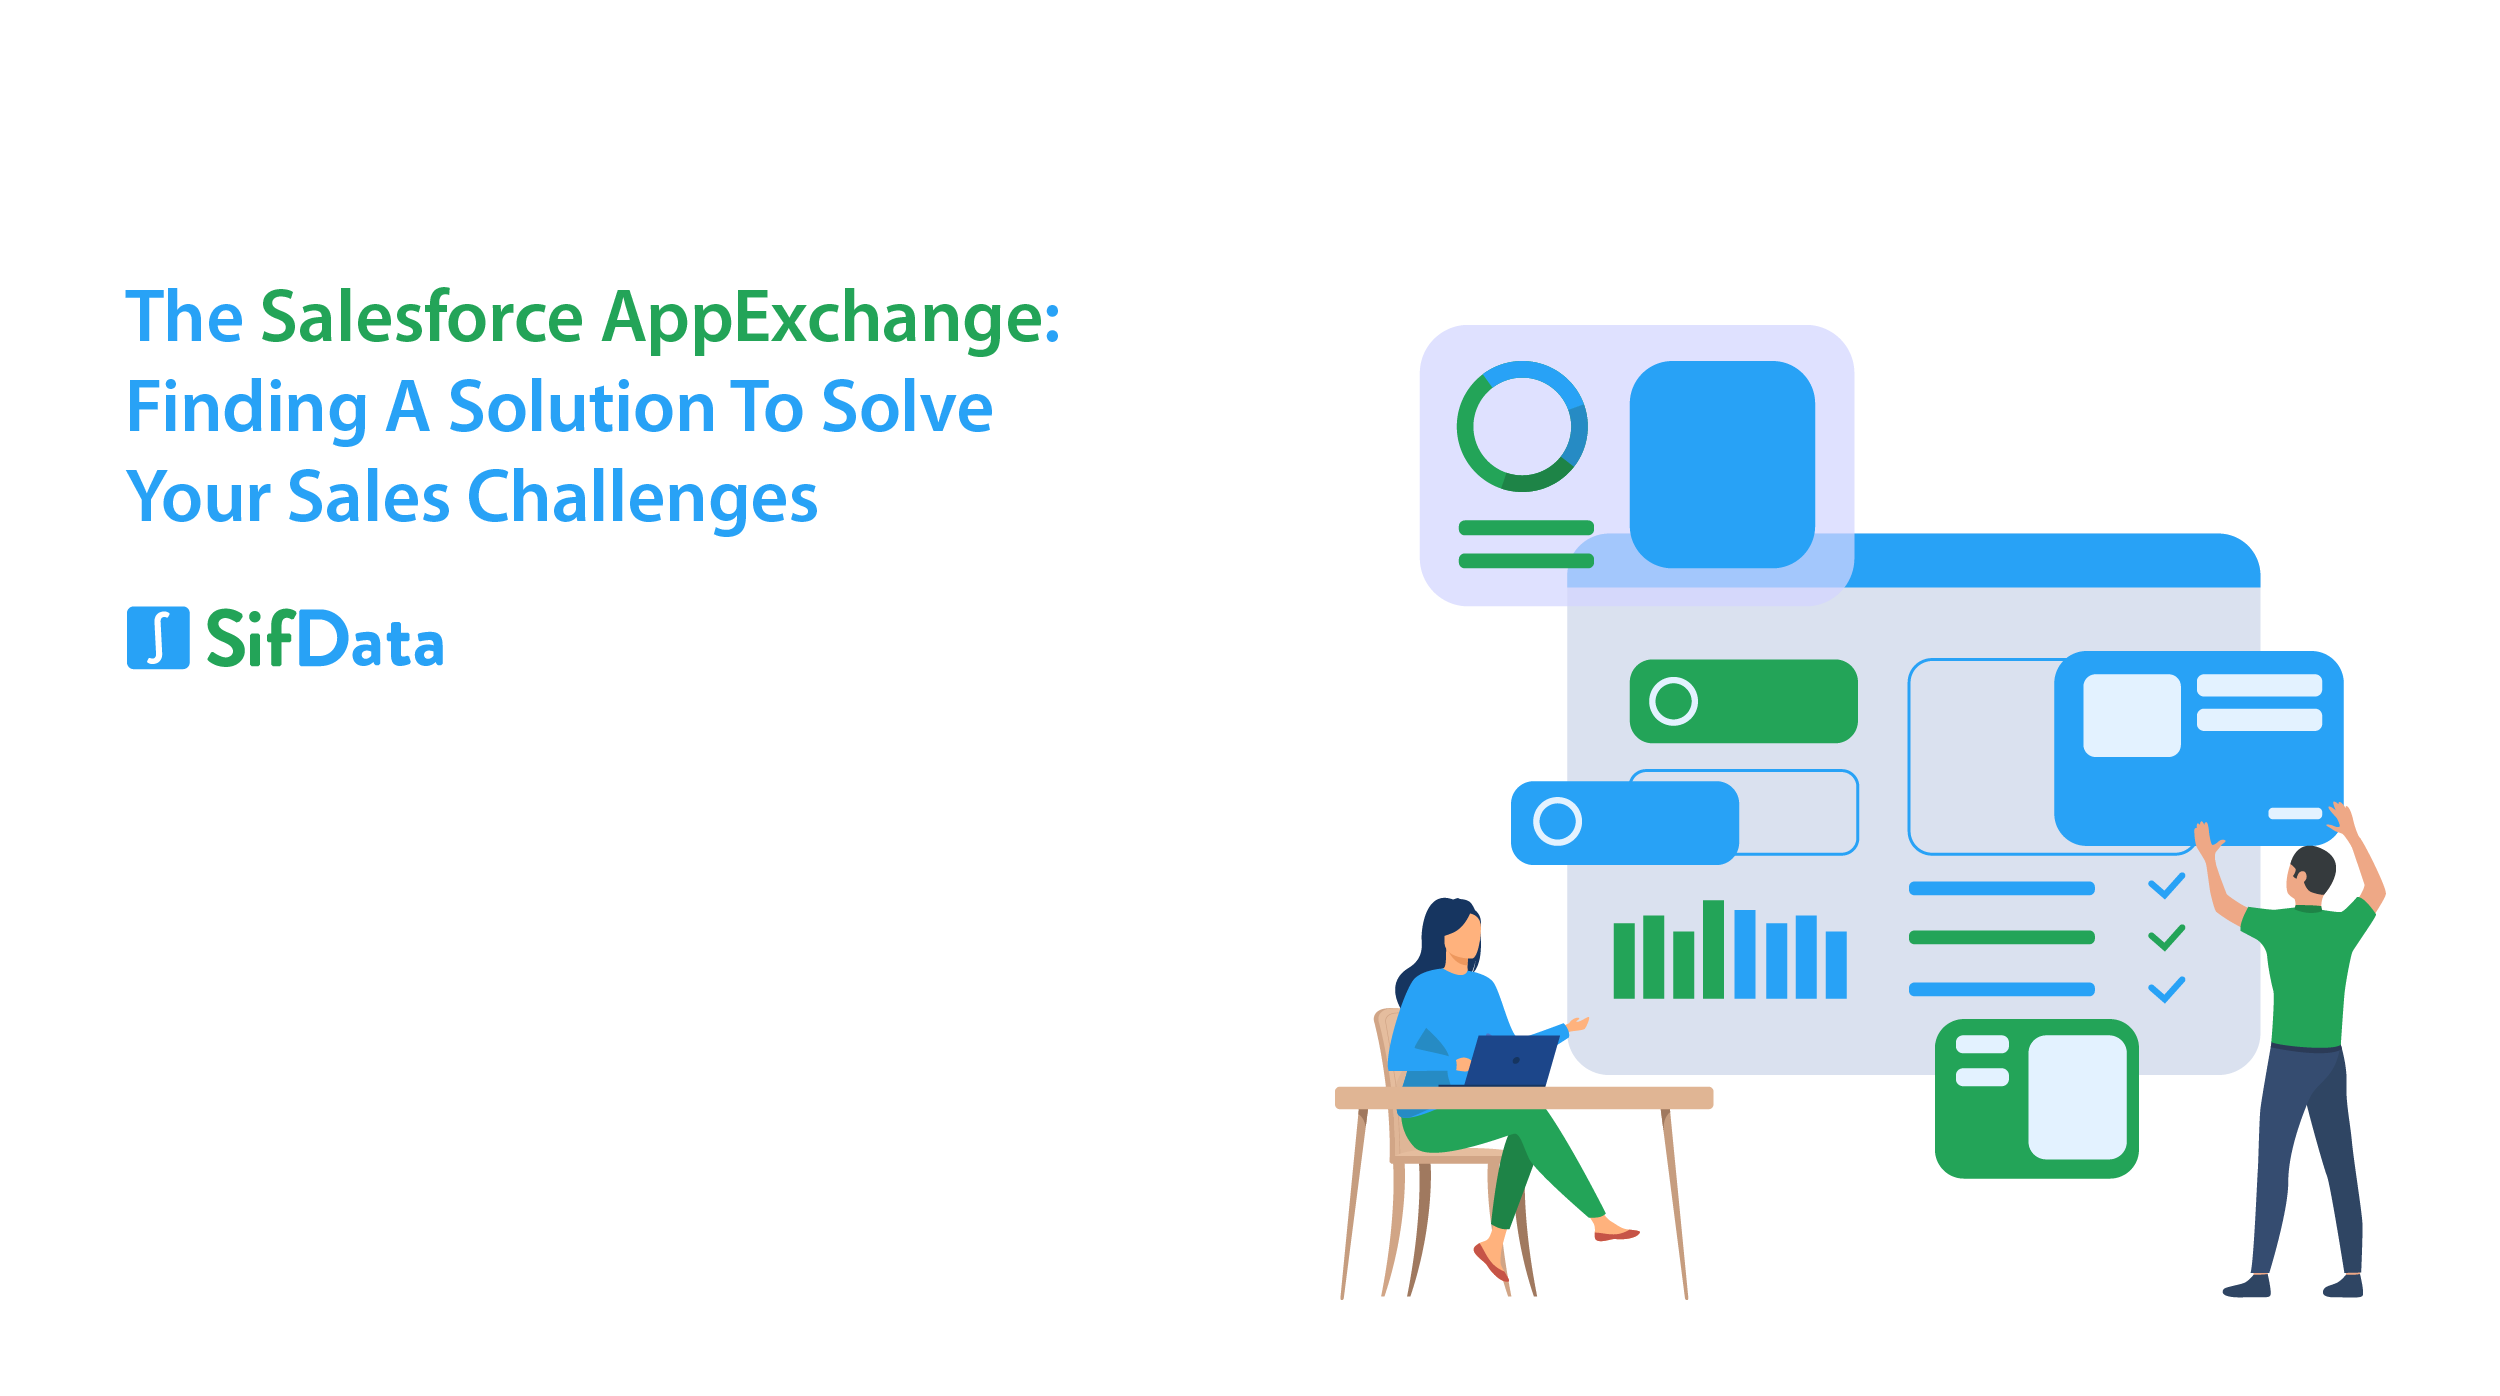 THE SALESFORCE APPEXCHANGE: FINDING A SOLUTION TO SOLVE YOUR SALES CHALLENGES